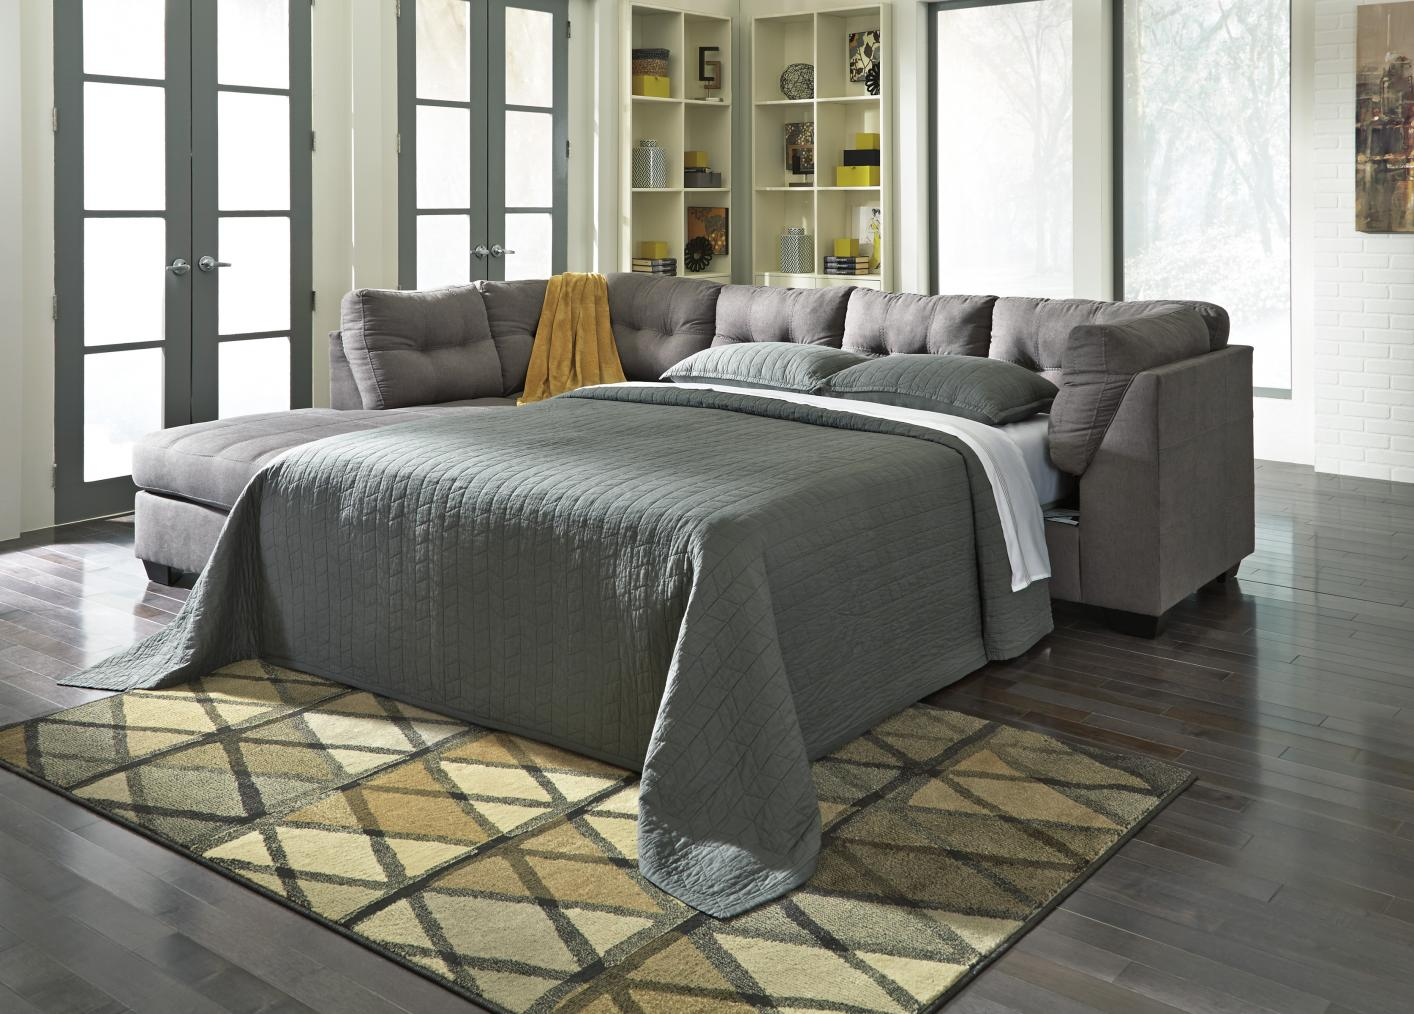 Fresh Gray Sectional Sleeper Sofa 36 For Living Room Sofa Inspiration with Gray Sectional Sleeper Sofa : queen sectional sleeper sofa - Sectionals, Sofas & Couches